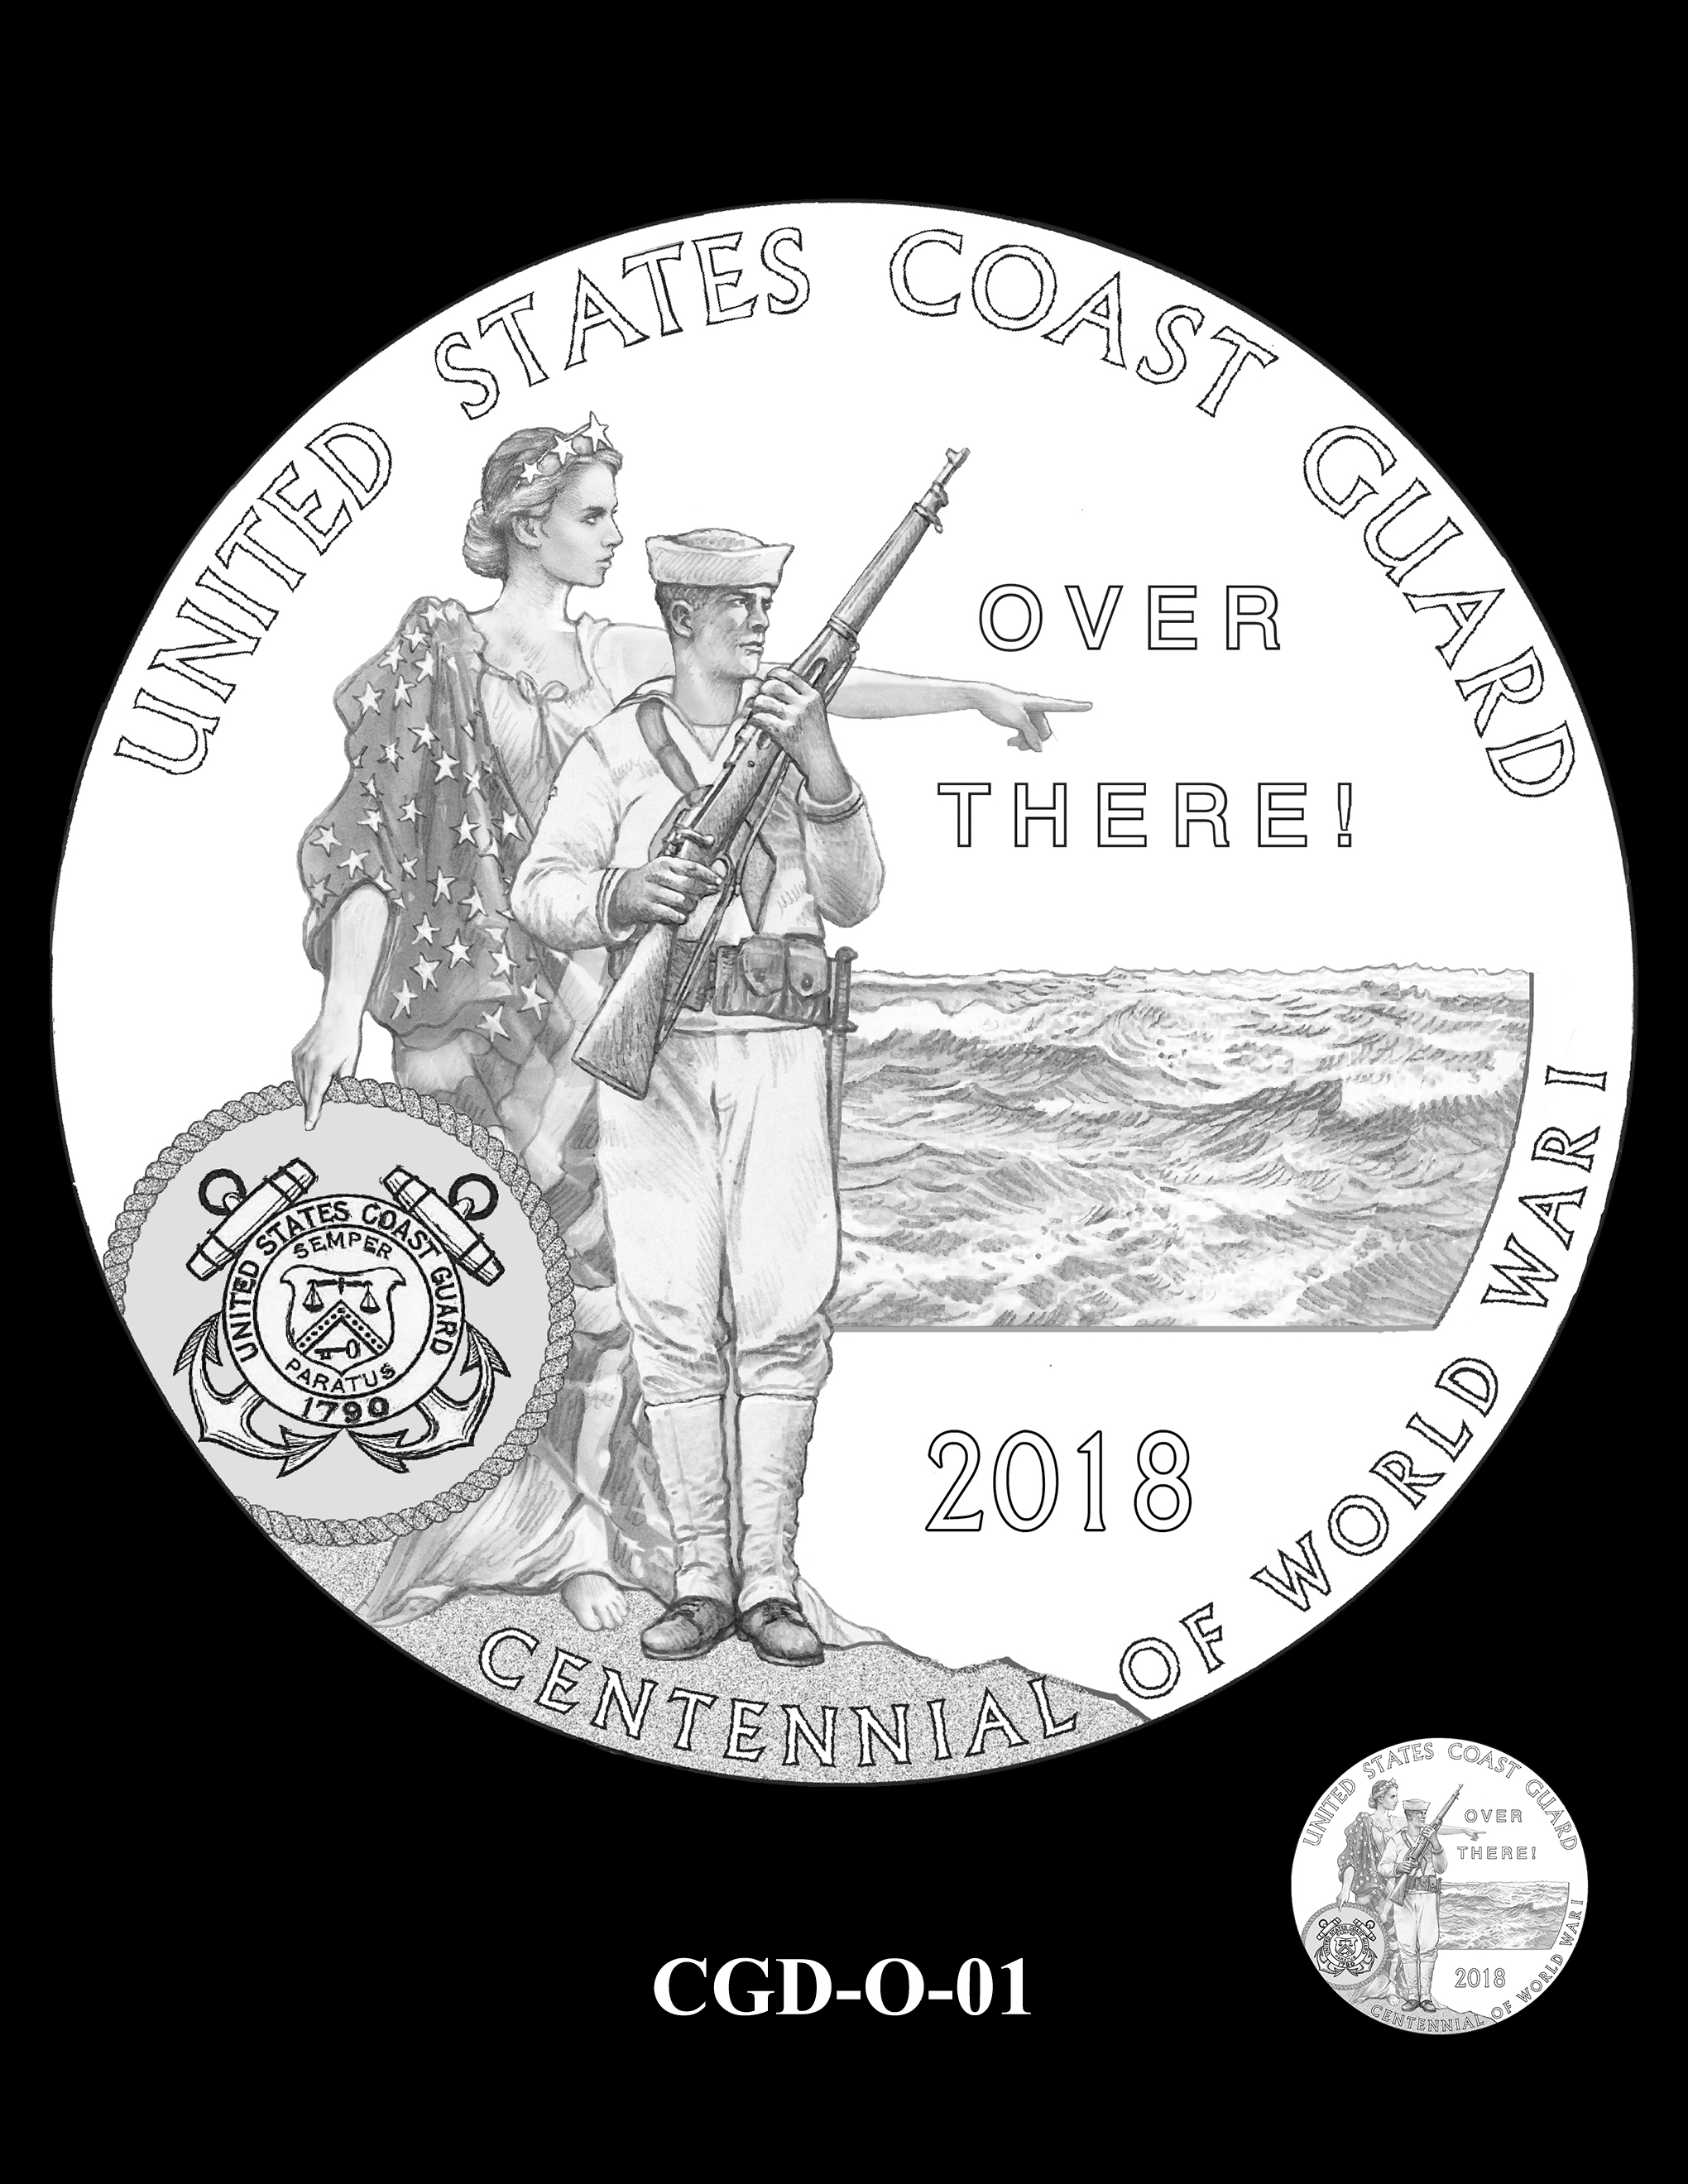 P1a-CGD-O-01 -- 2018-World War I Silver Medals - Coast Guard